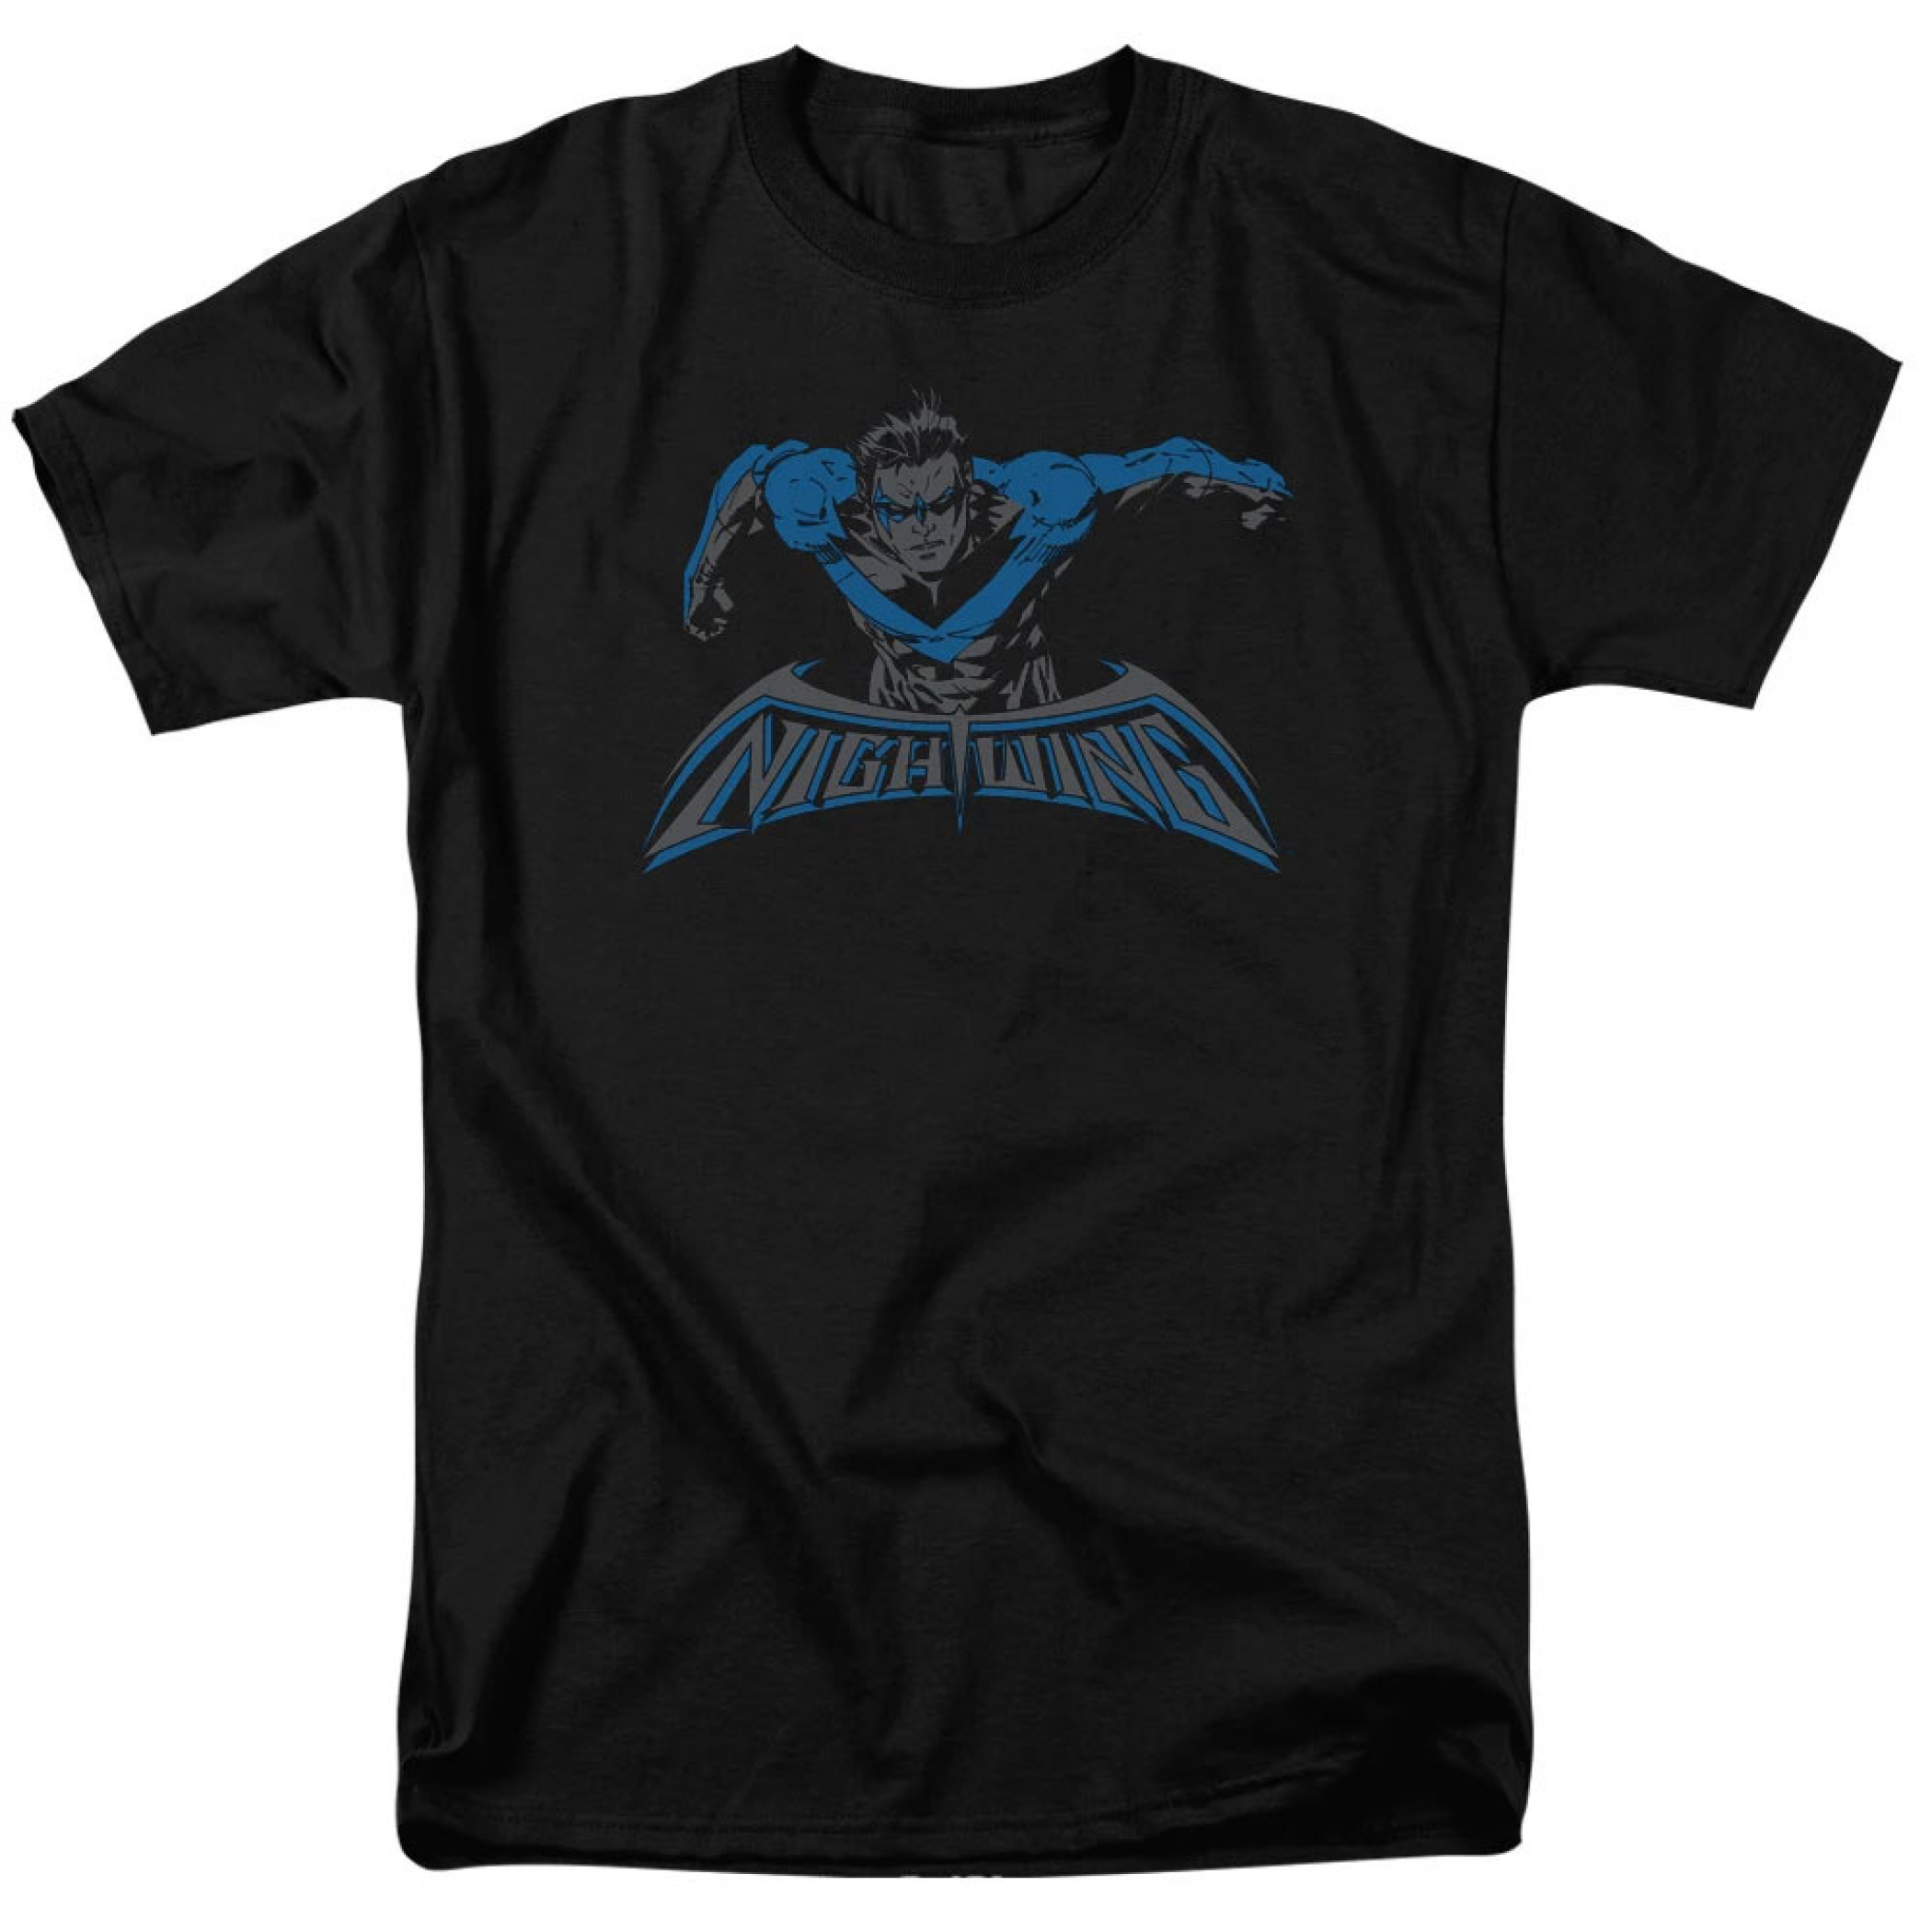 Nightwing Wing of the Night T-Shirt